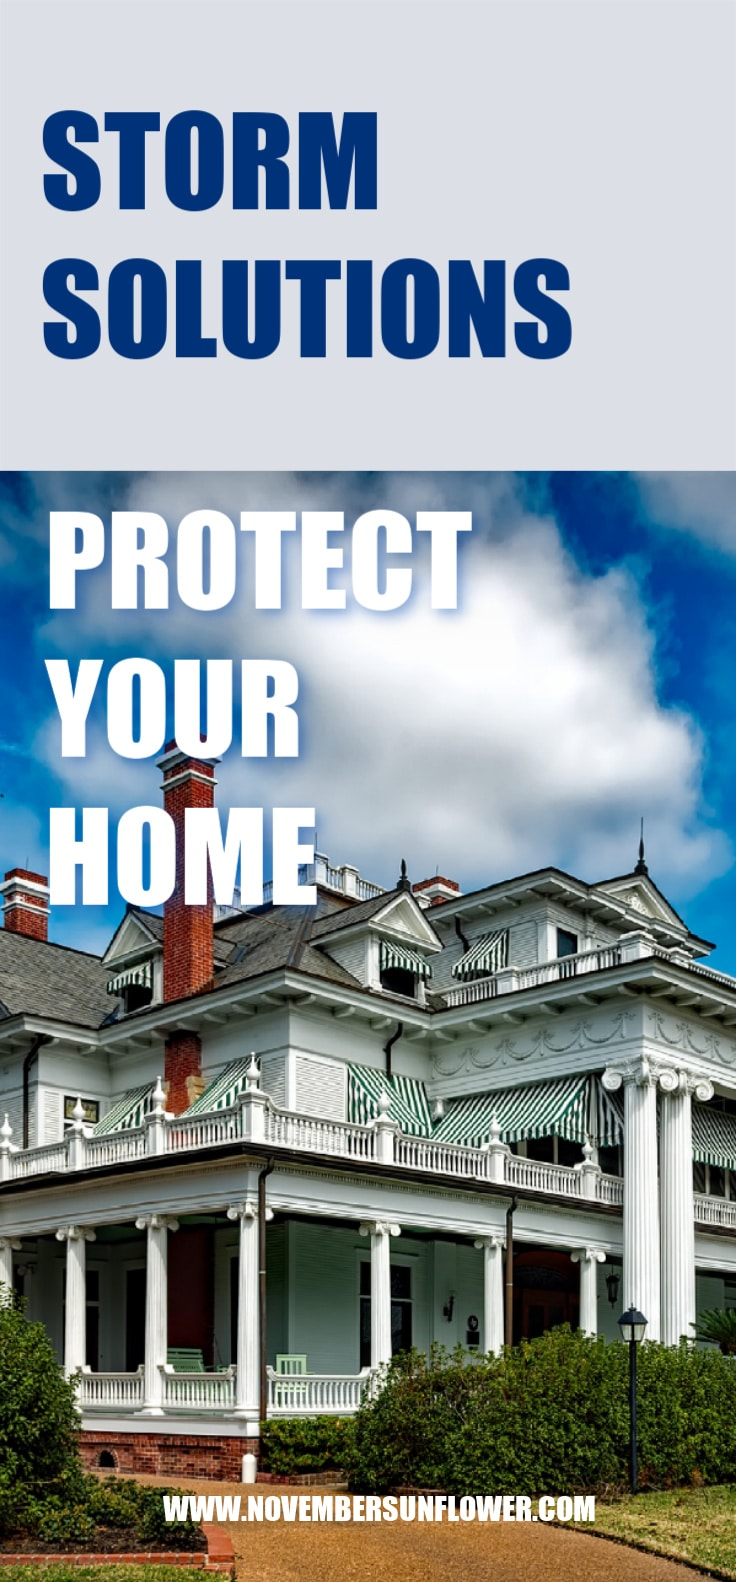 Protect your home - storm solutions